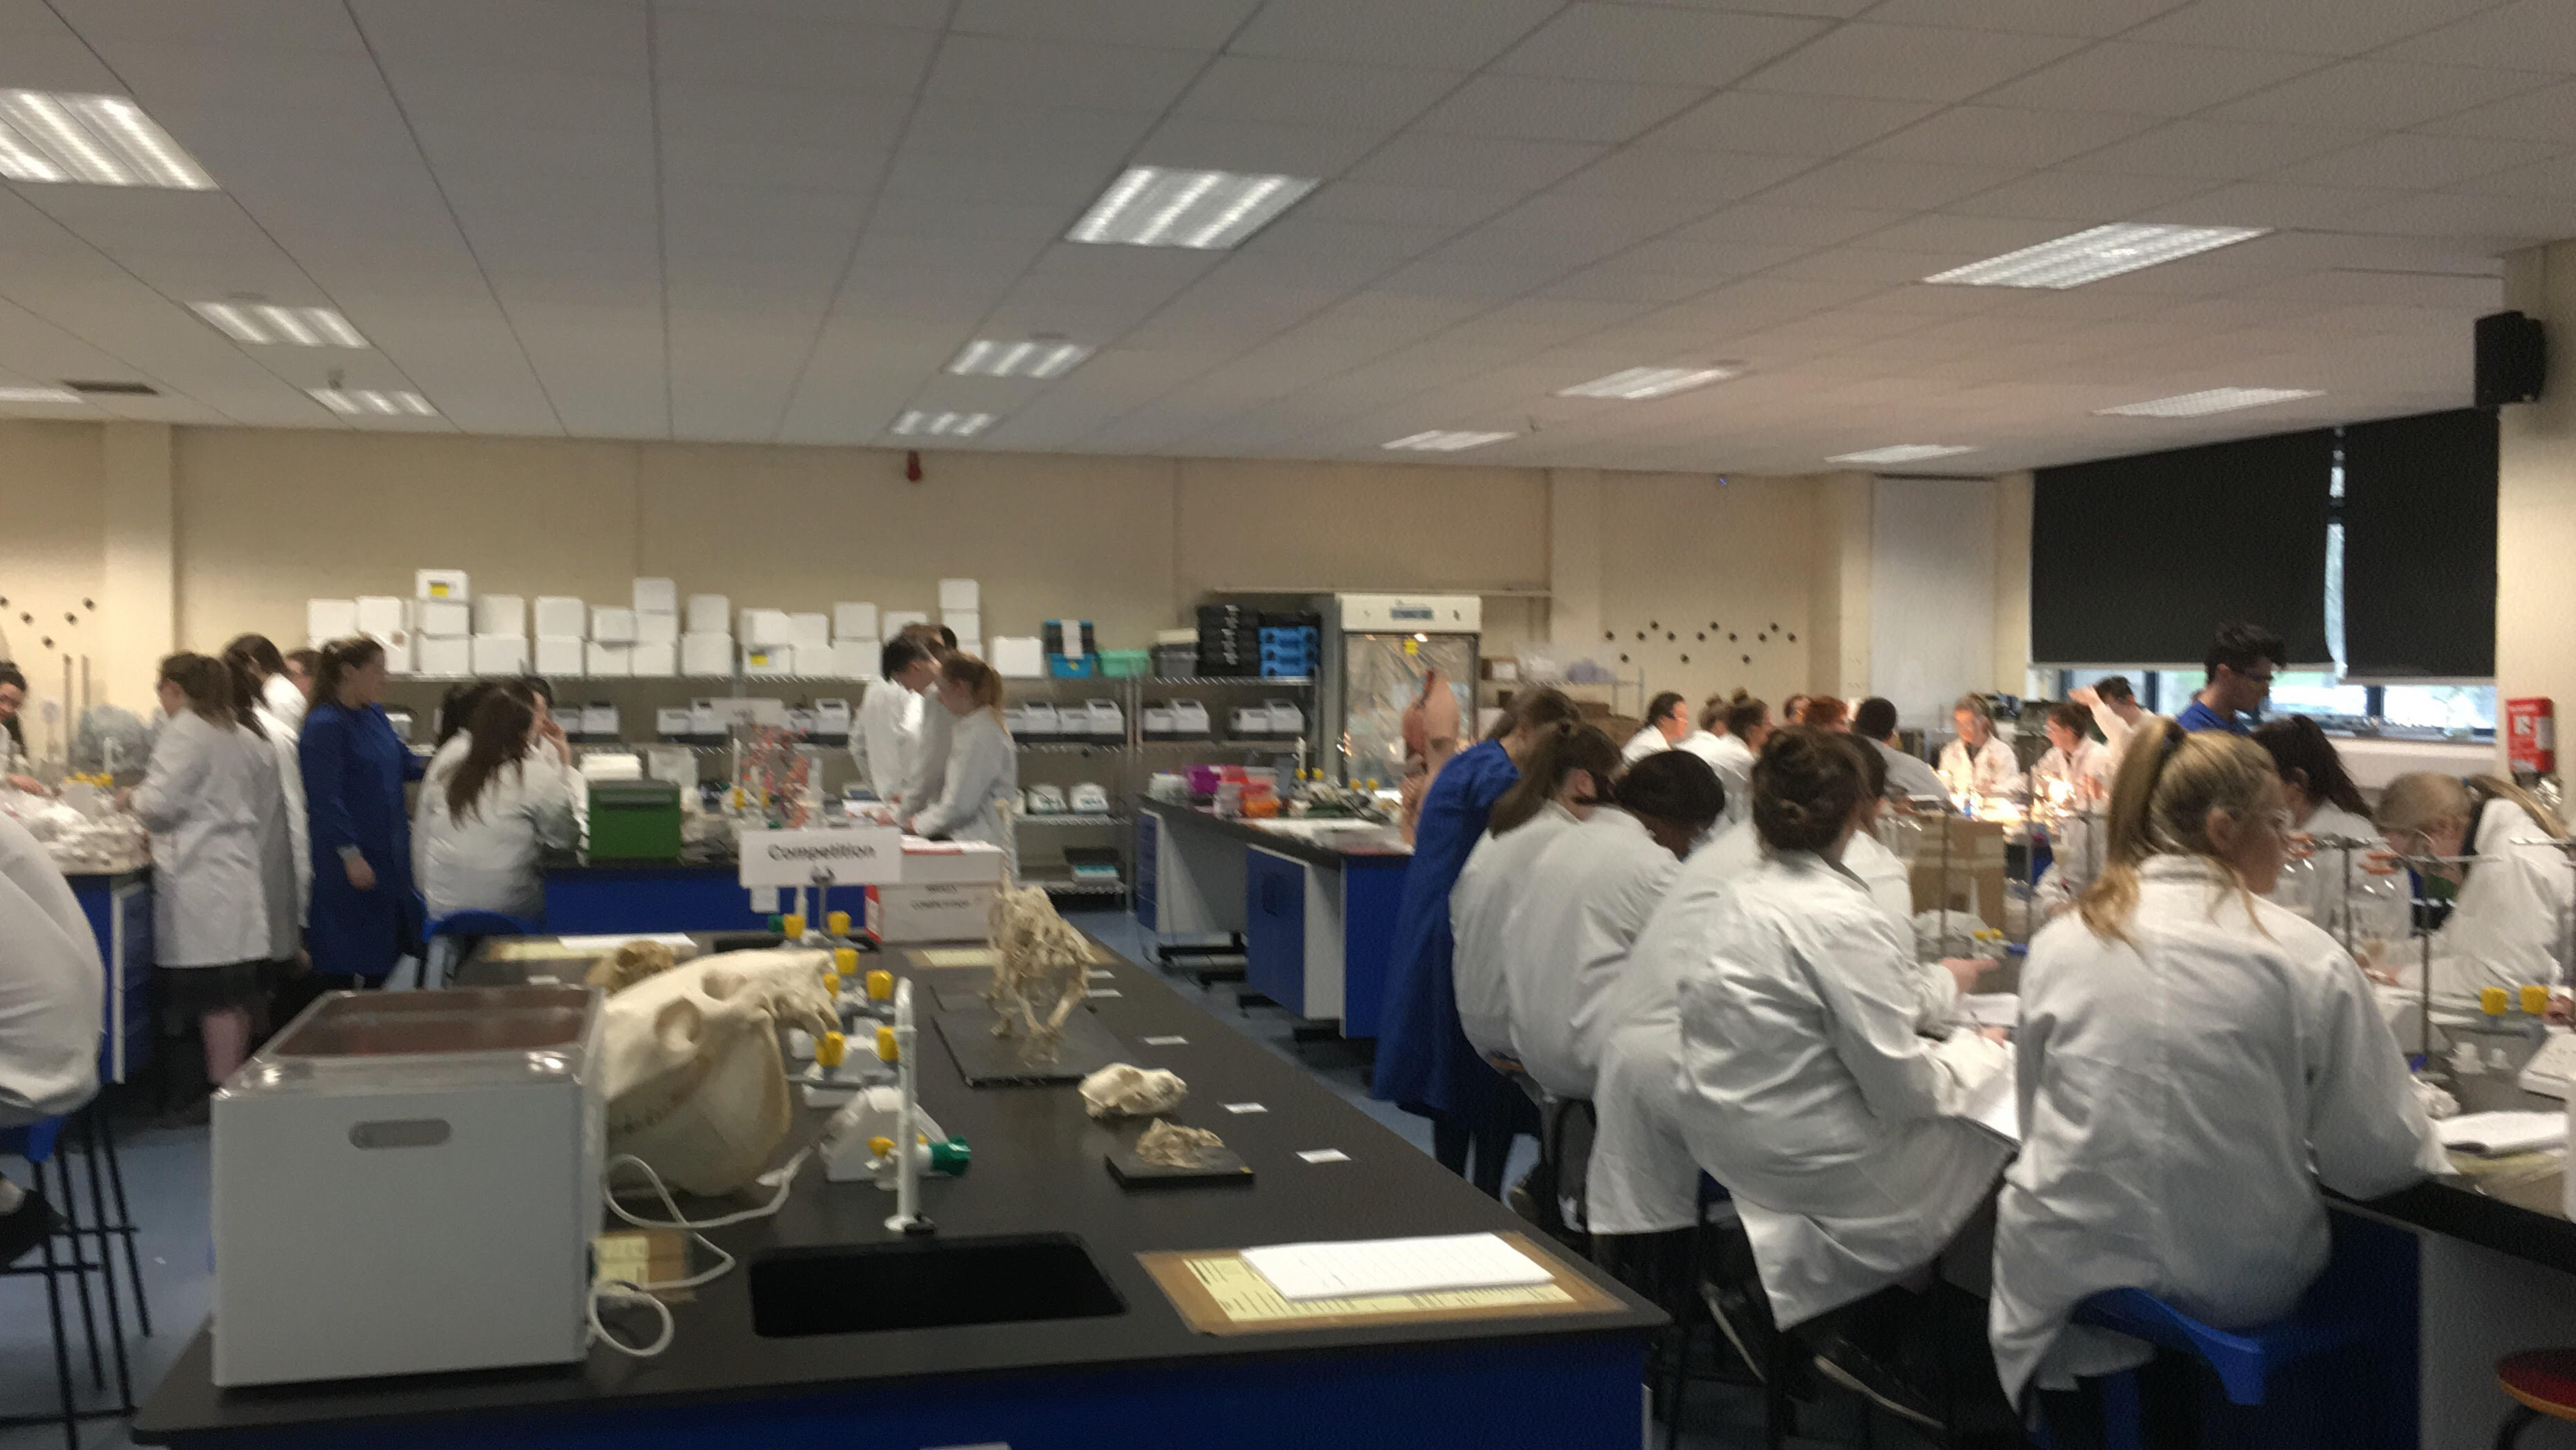 Maynooth University Schools Programme Practical Labs